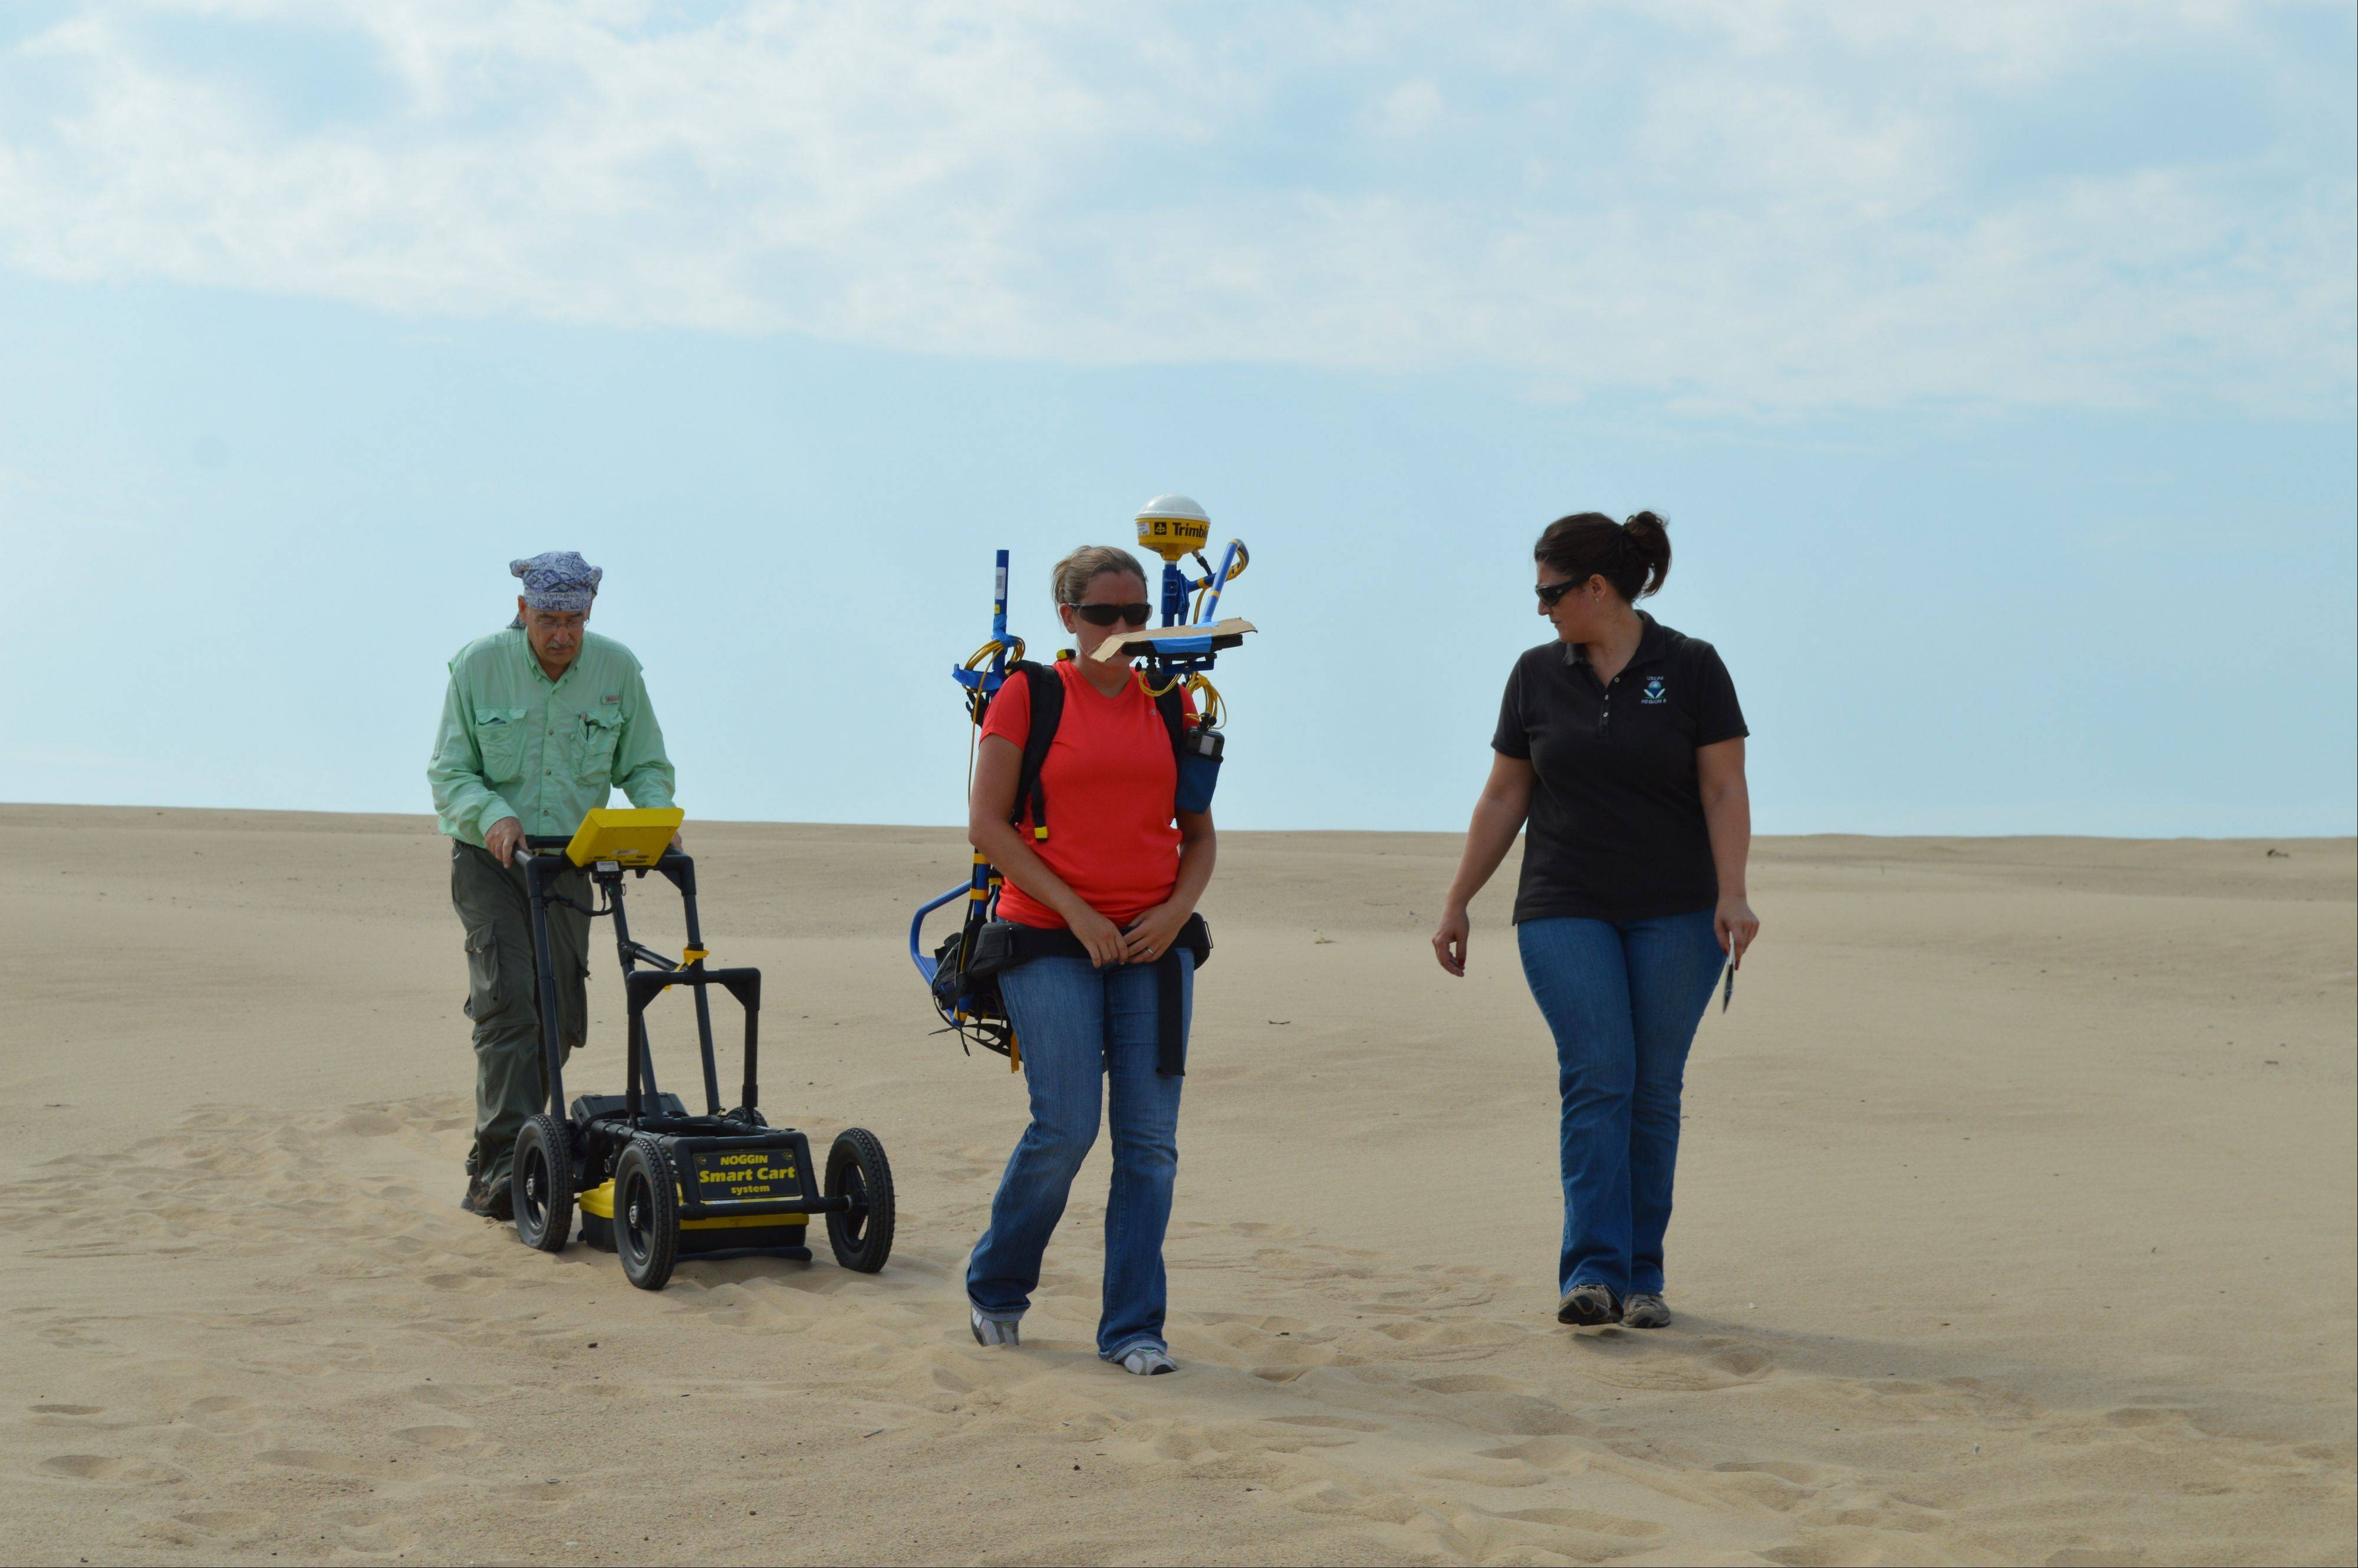 Environmental Protection Agency scientists use ground-penetrating radar equipment at Mount Baldy at the Indiana Dunes National Lakeshore on Monday near Michigan City, Ind. They are gathering data todetermine the safety of a northern Indiana sand dune that collapsed and buried a young boy under 11 feet of sand.